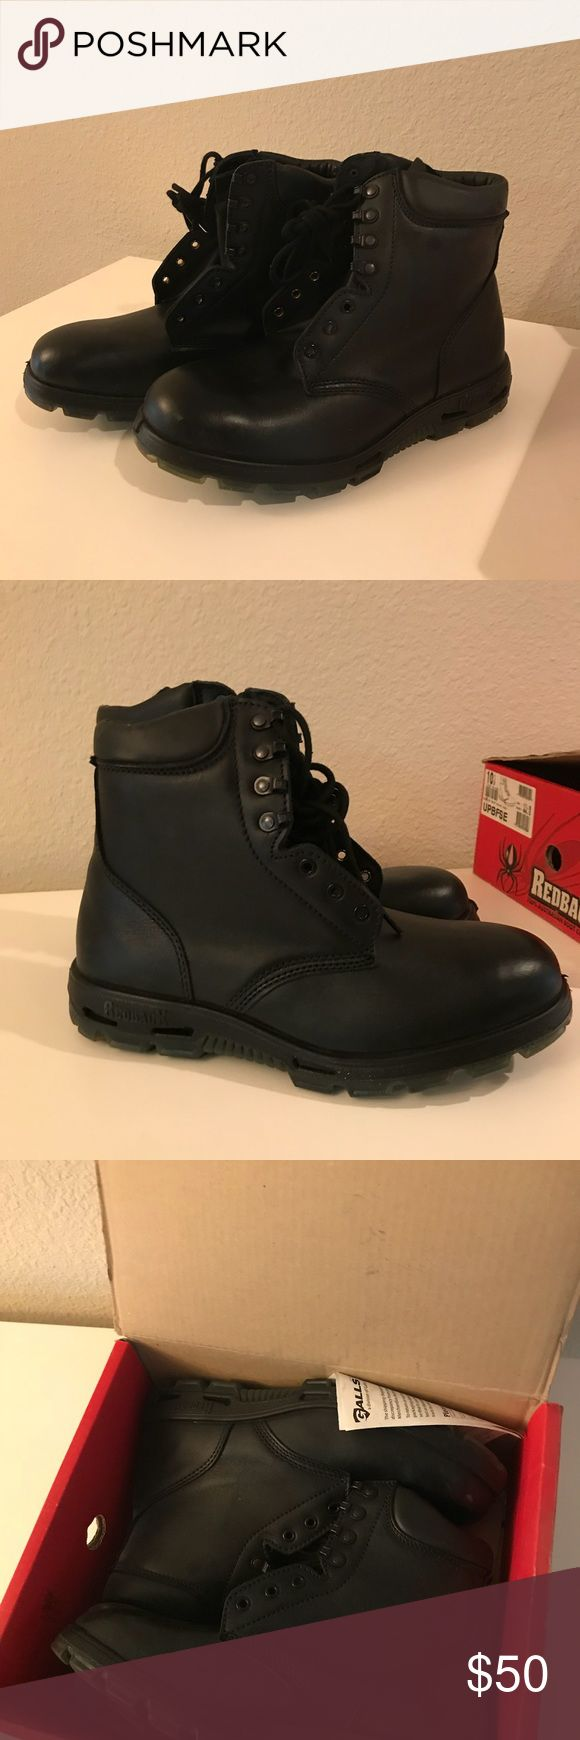 "Mens Redback Boots Patrol 8"" lace up boot in waxy black. Never worn, in perfect condition. NOT a steel toe. Redback Shoes Boots"